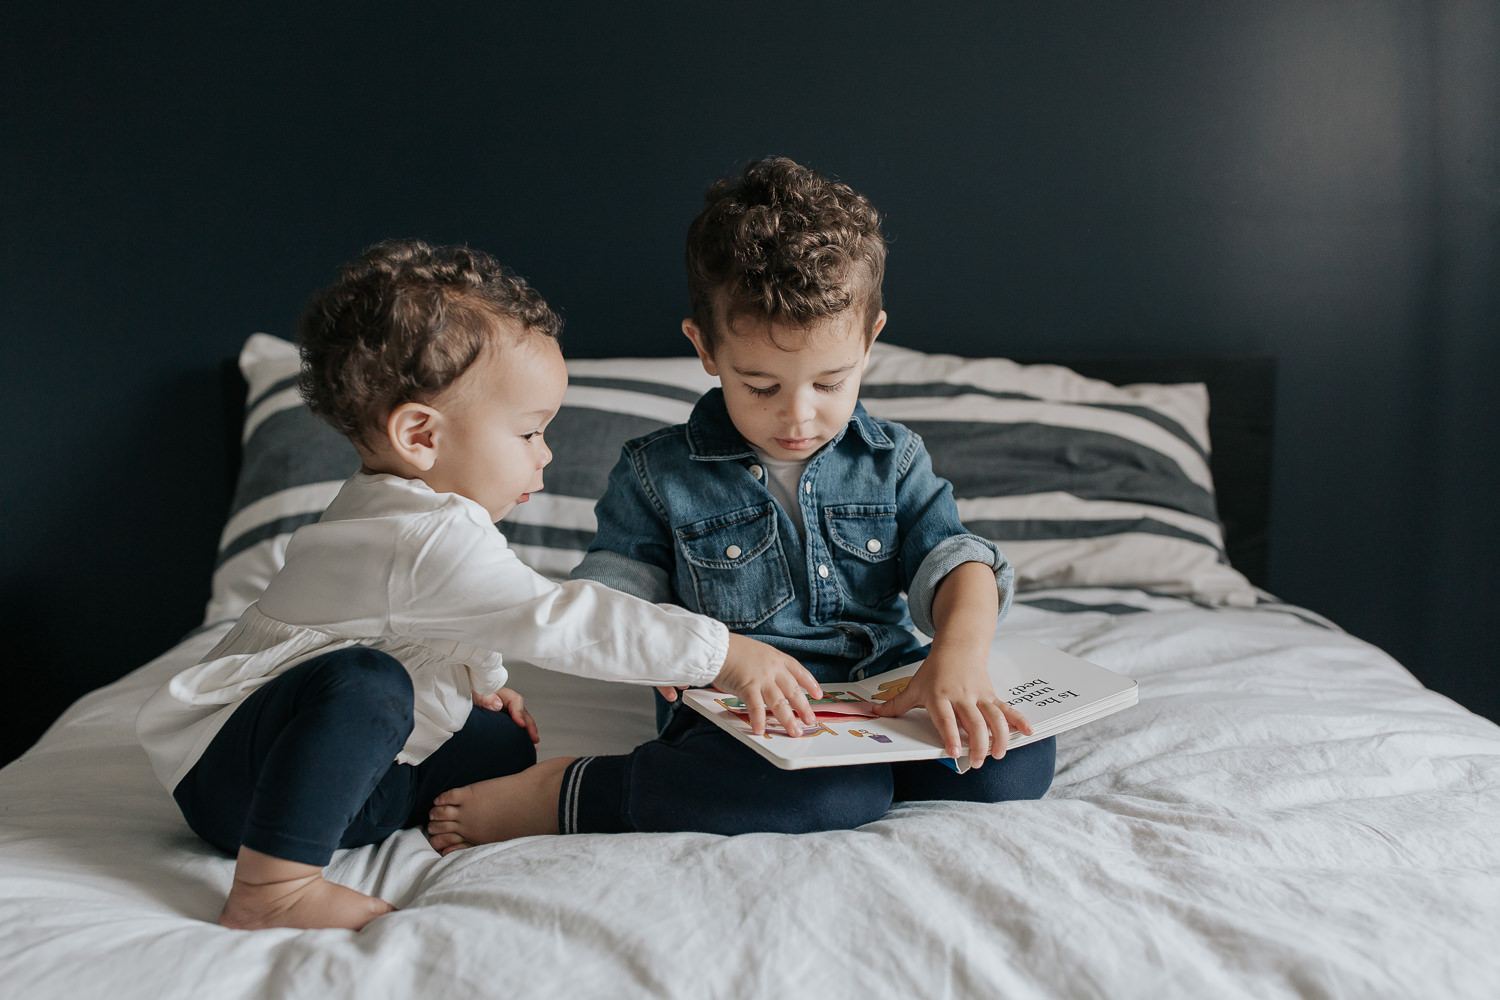 2 year old toddler boy with dark curly hair wearing chambray shirt sitting on his bed reading book, 1 year old baby sister sitting next to him, reaching for the page - Markham Lifestyle Photos